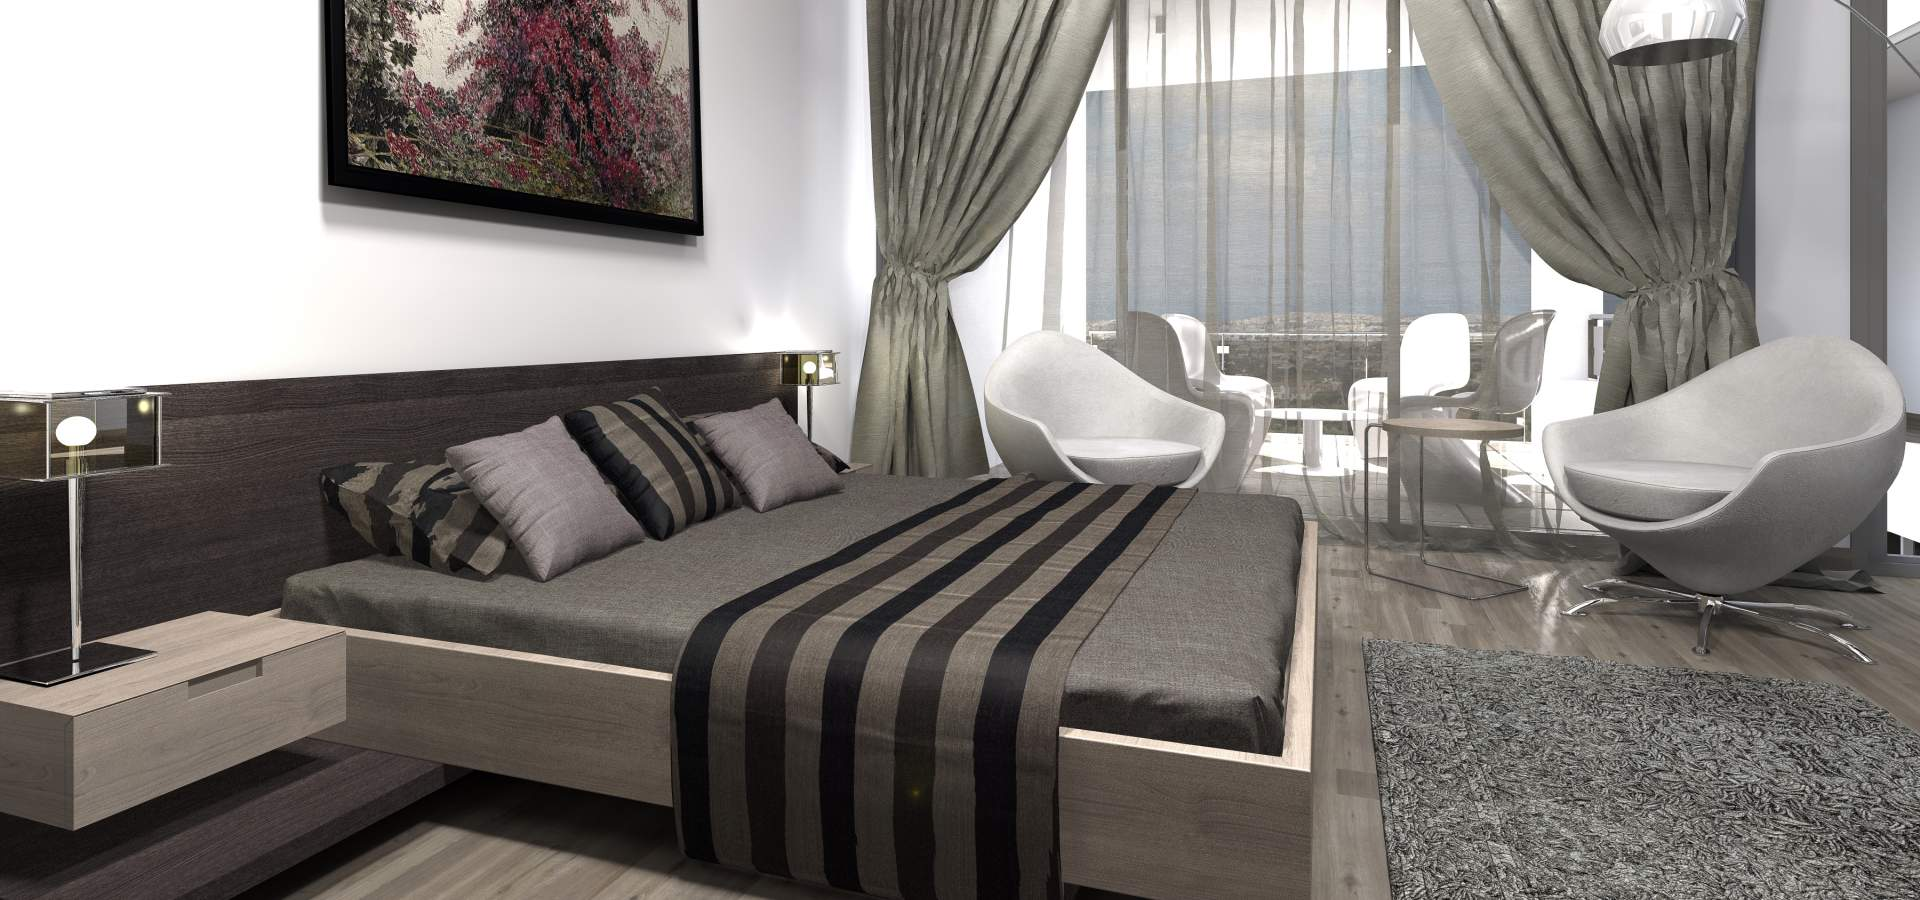 Konia Modern Luxury Residences Interior Design